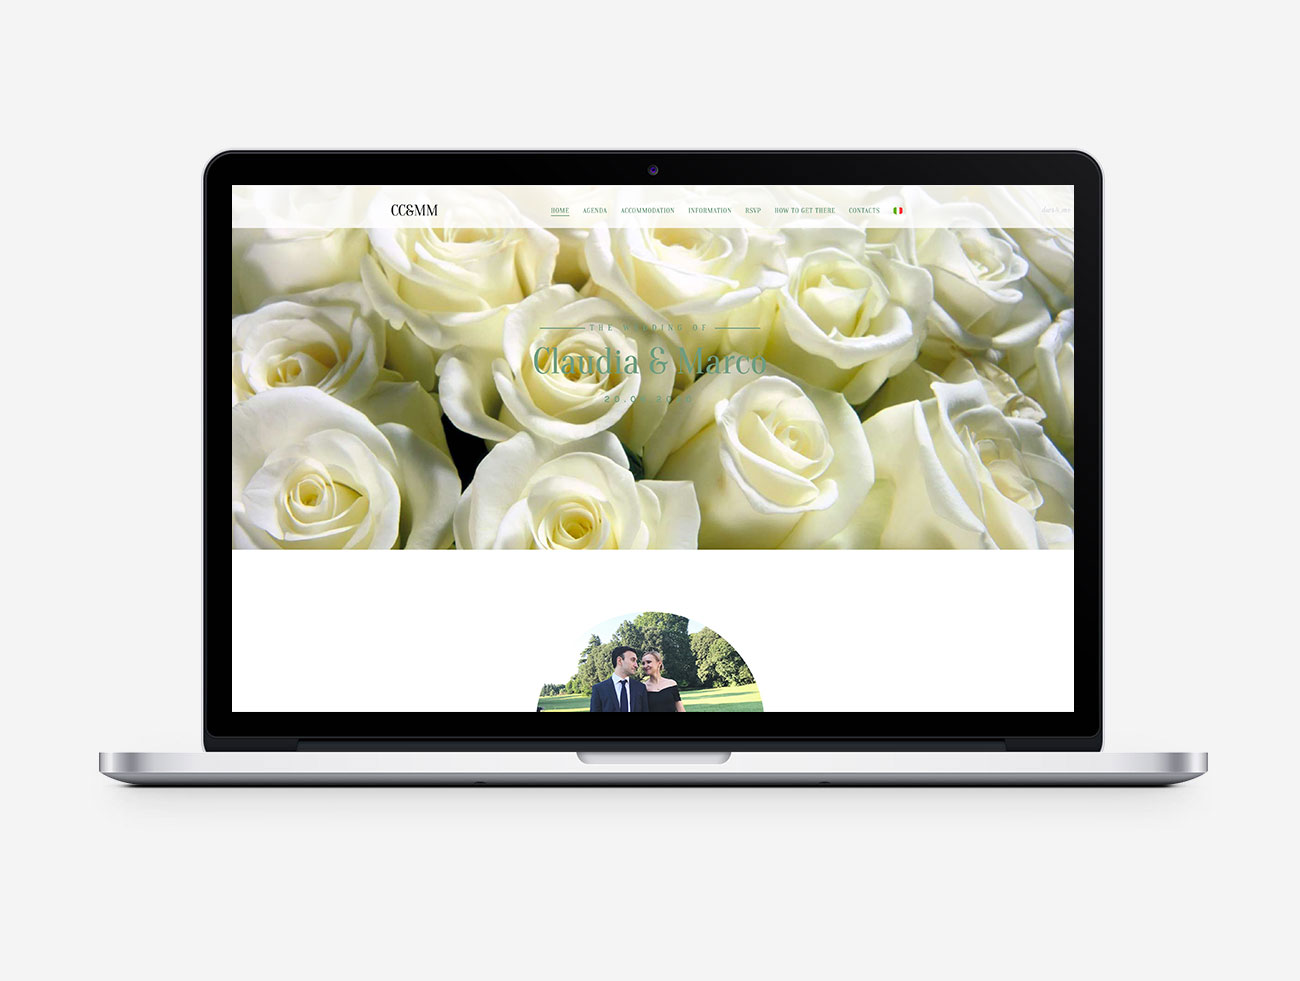 Claudia e Marco – Multilingual Wedding Website